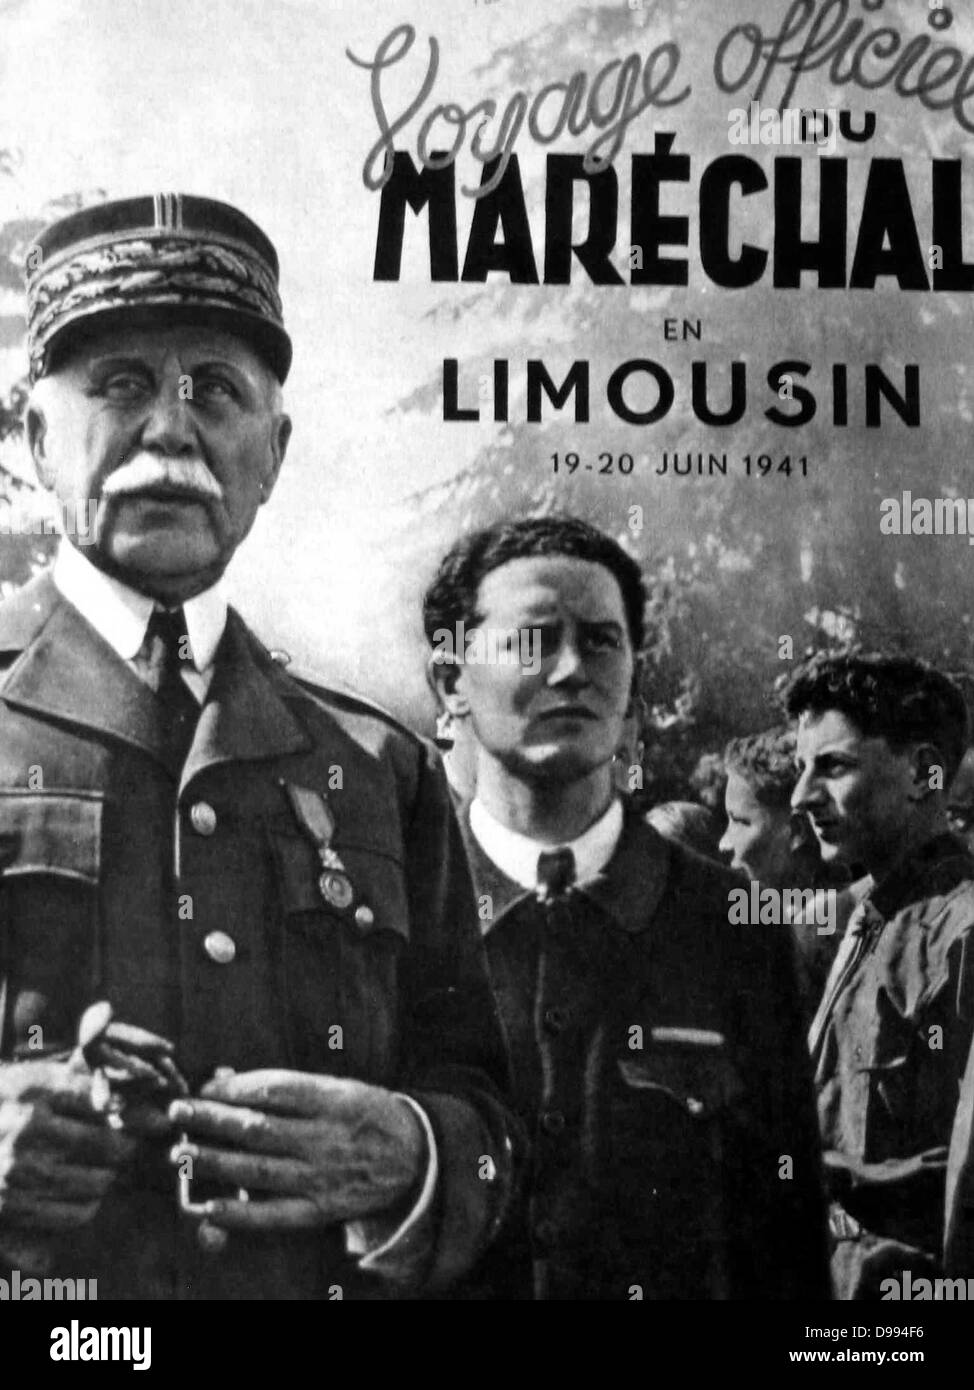 Henri Philippe Pétain 24 April 1856 – 23 July 1951, Marshal Pétain was a French general, later Chief of - Stock Image